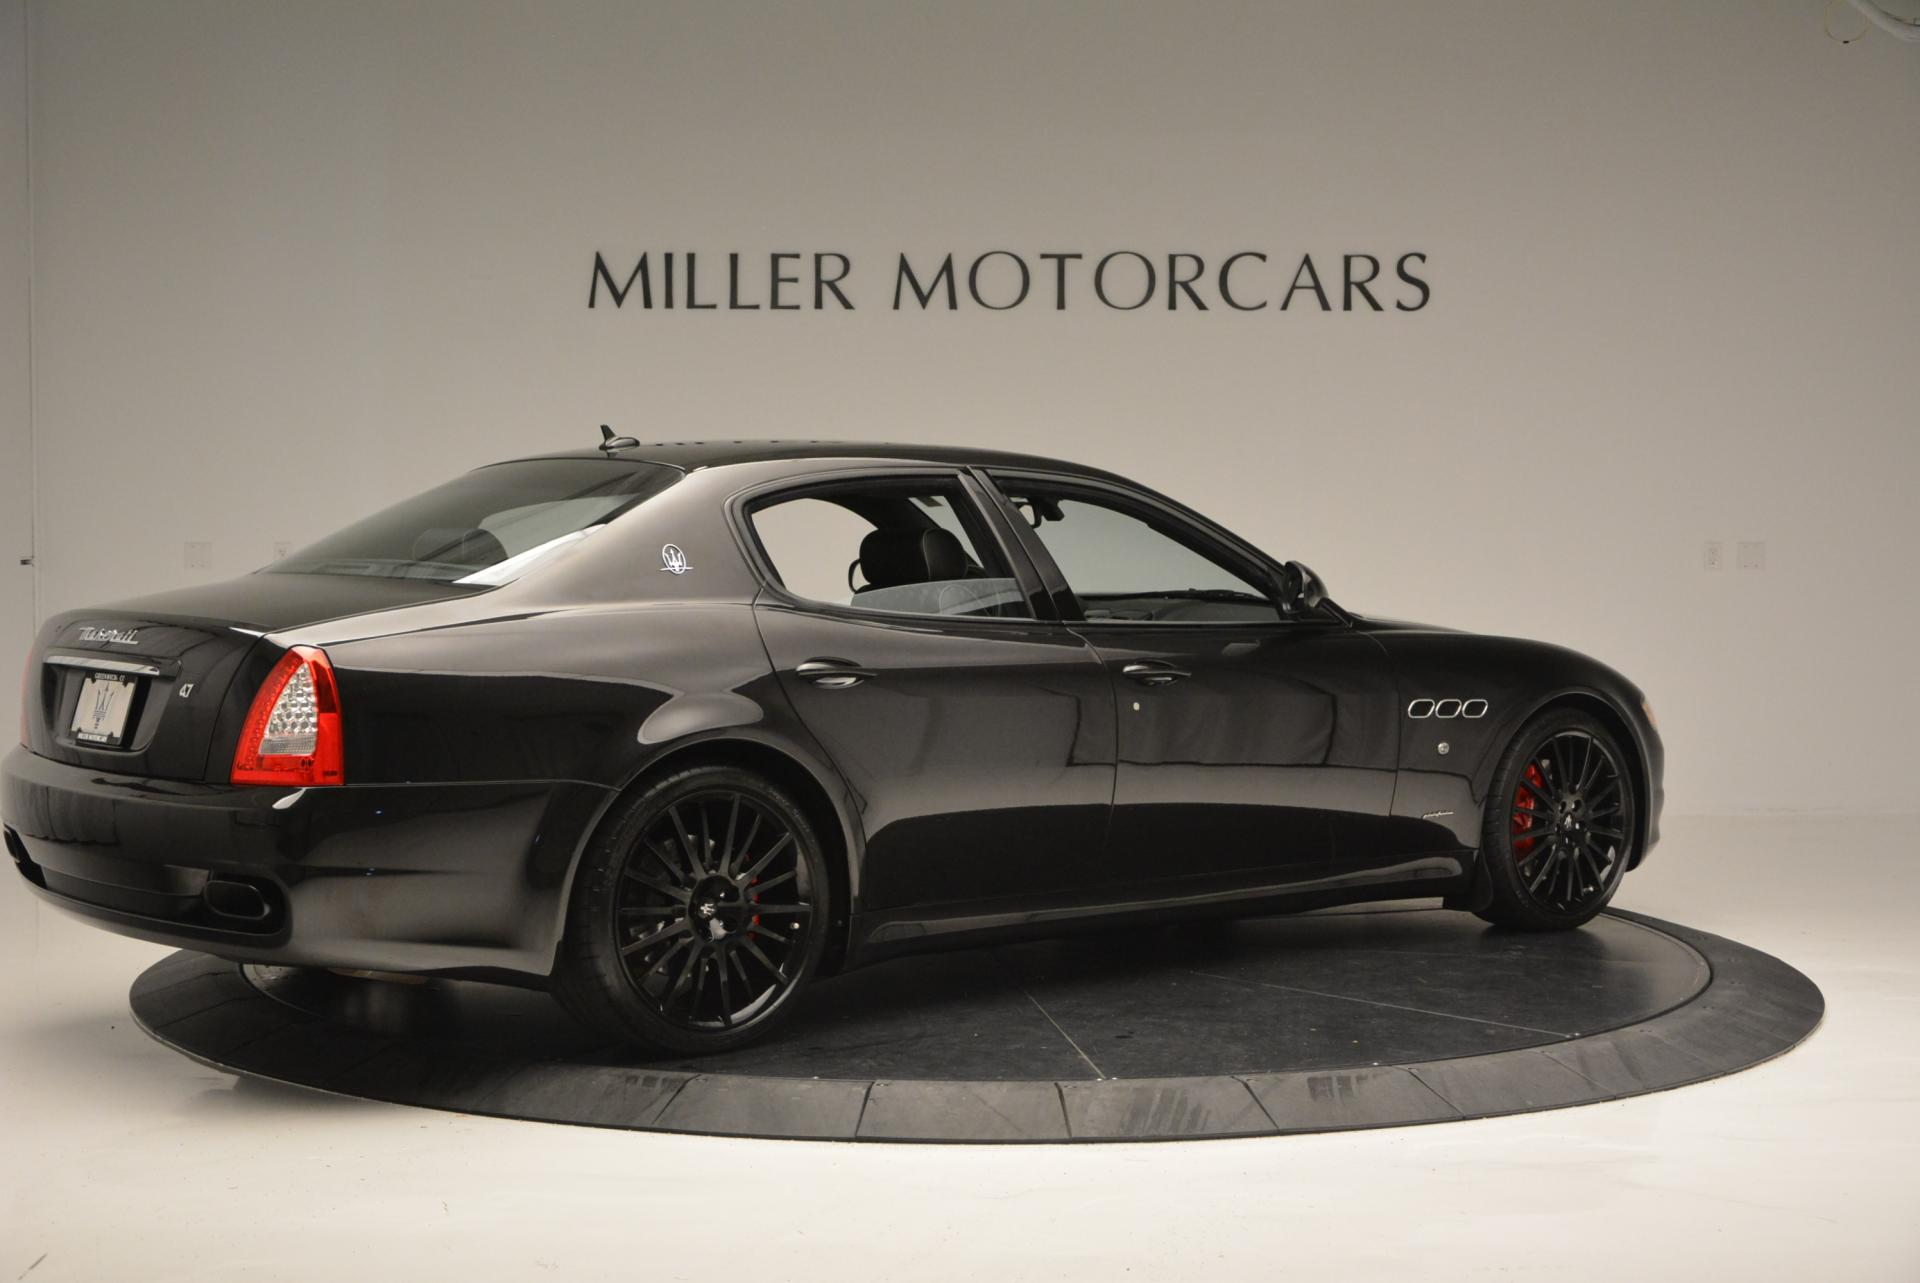 Used 2011 Maserati Quattroporte Sport GT S For Sale In Westport, CT 531_p8